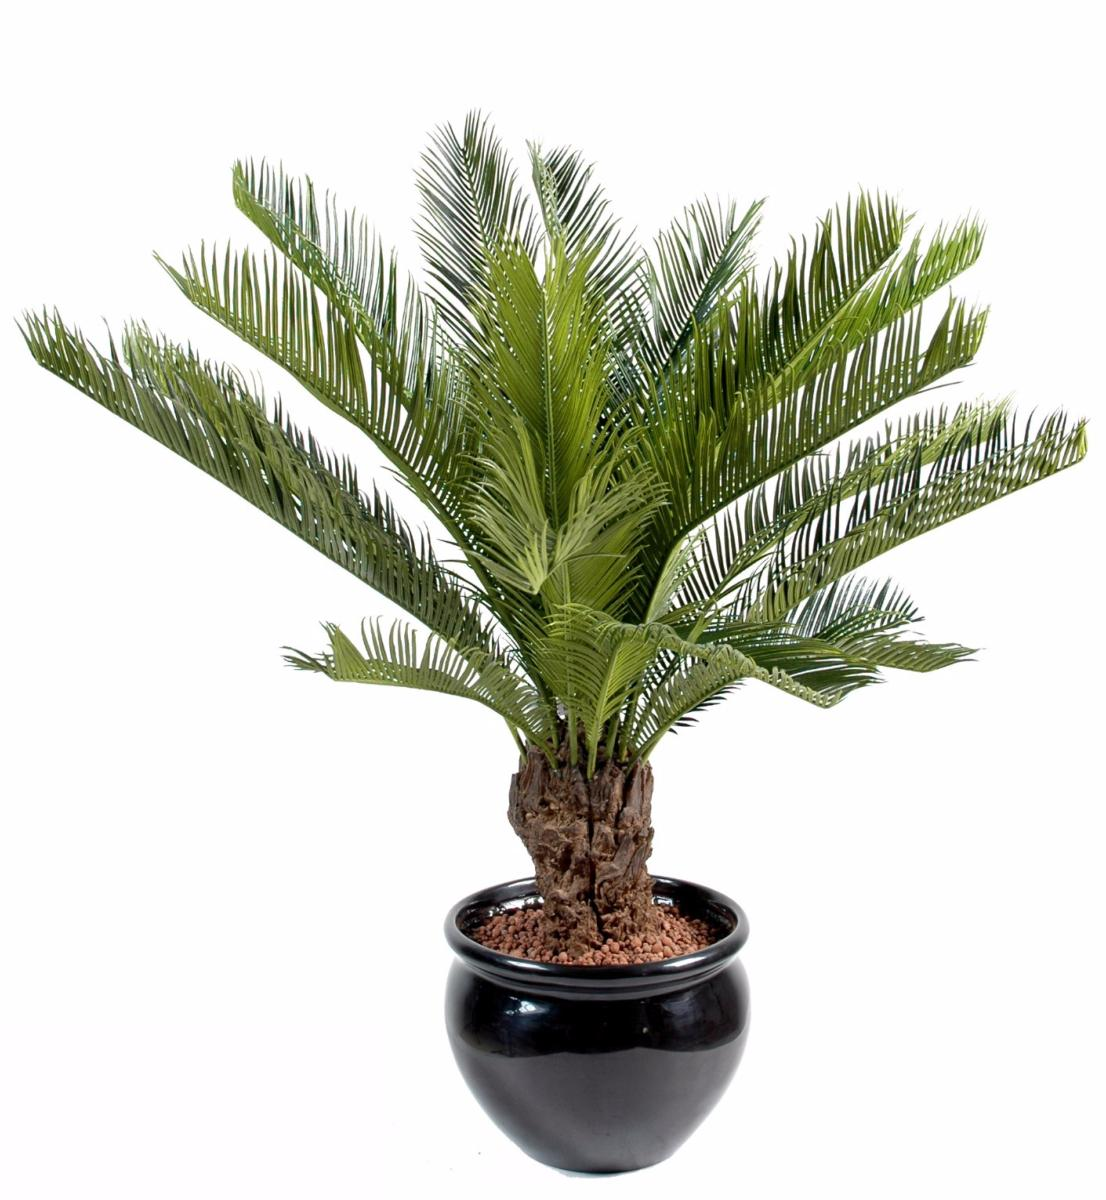 Palmier artificiel cycas tronc plante int rieur for Mini plante pas cher